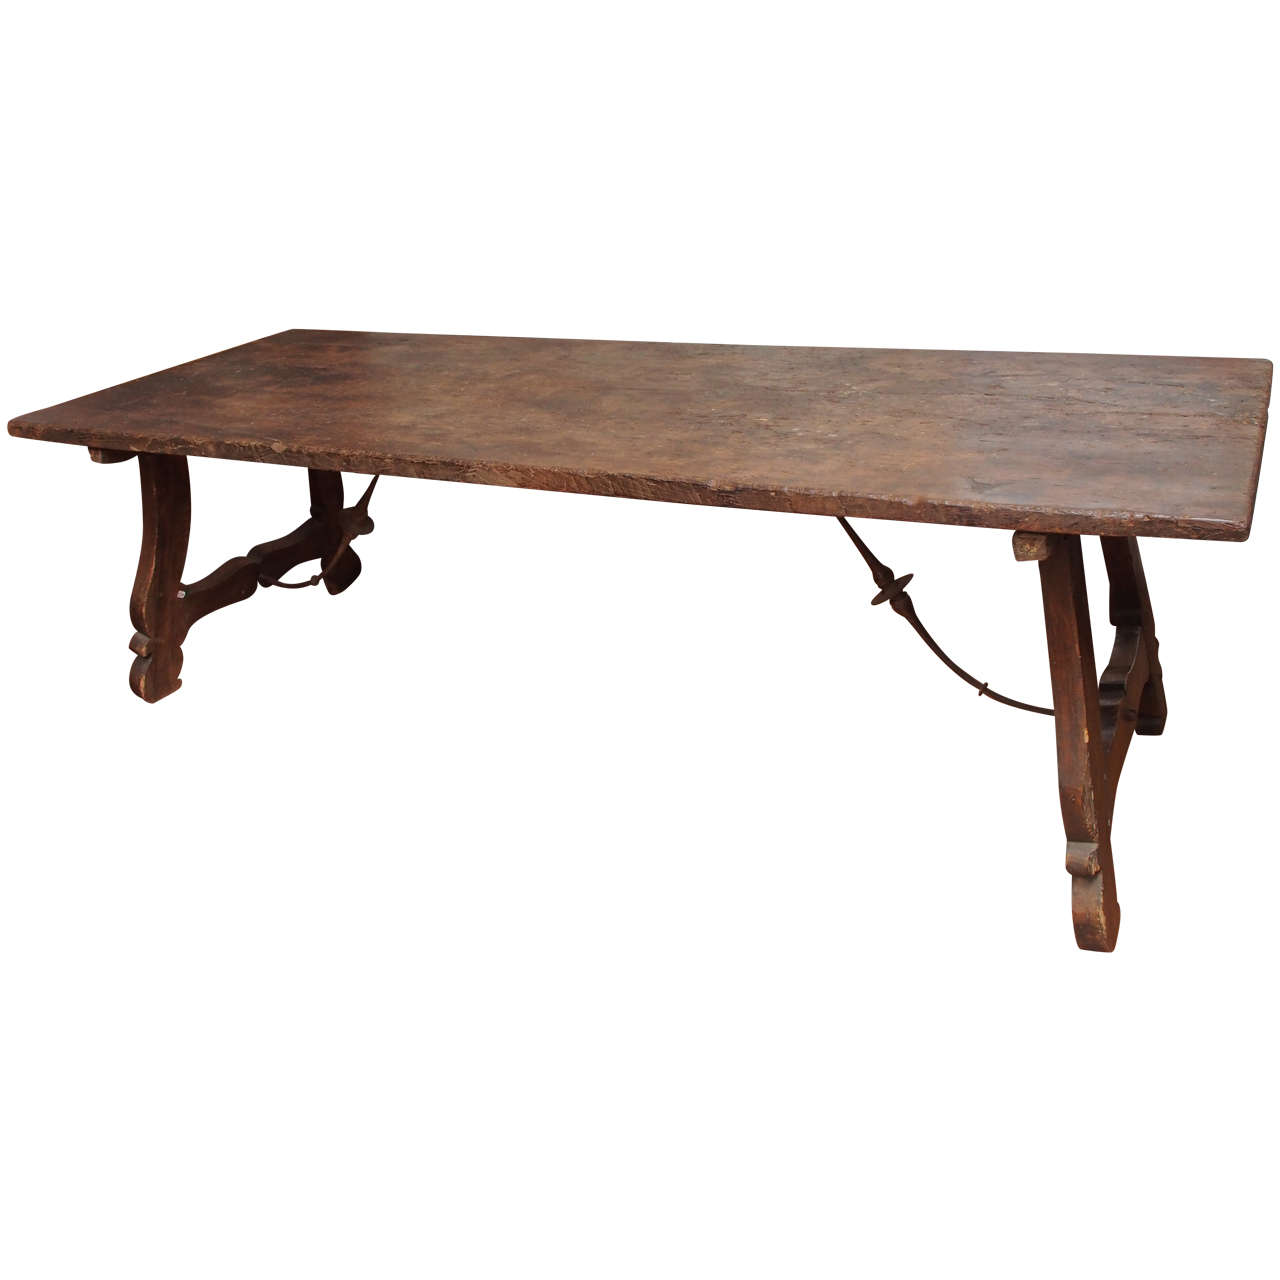 18th century spanish trestle table at 1stdibs for Table in spanish